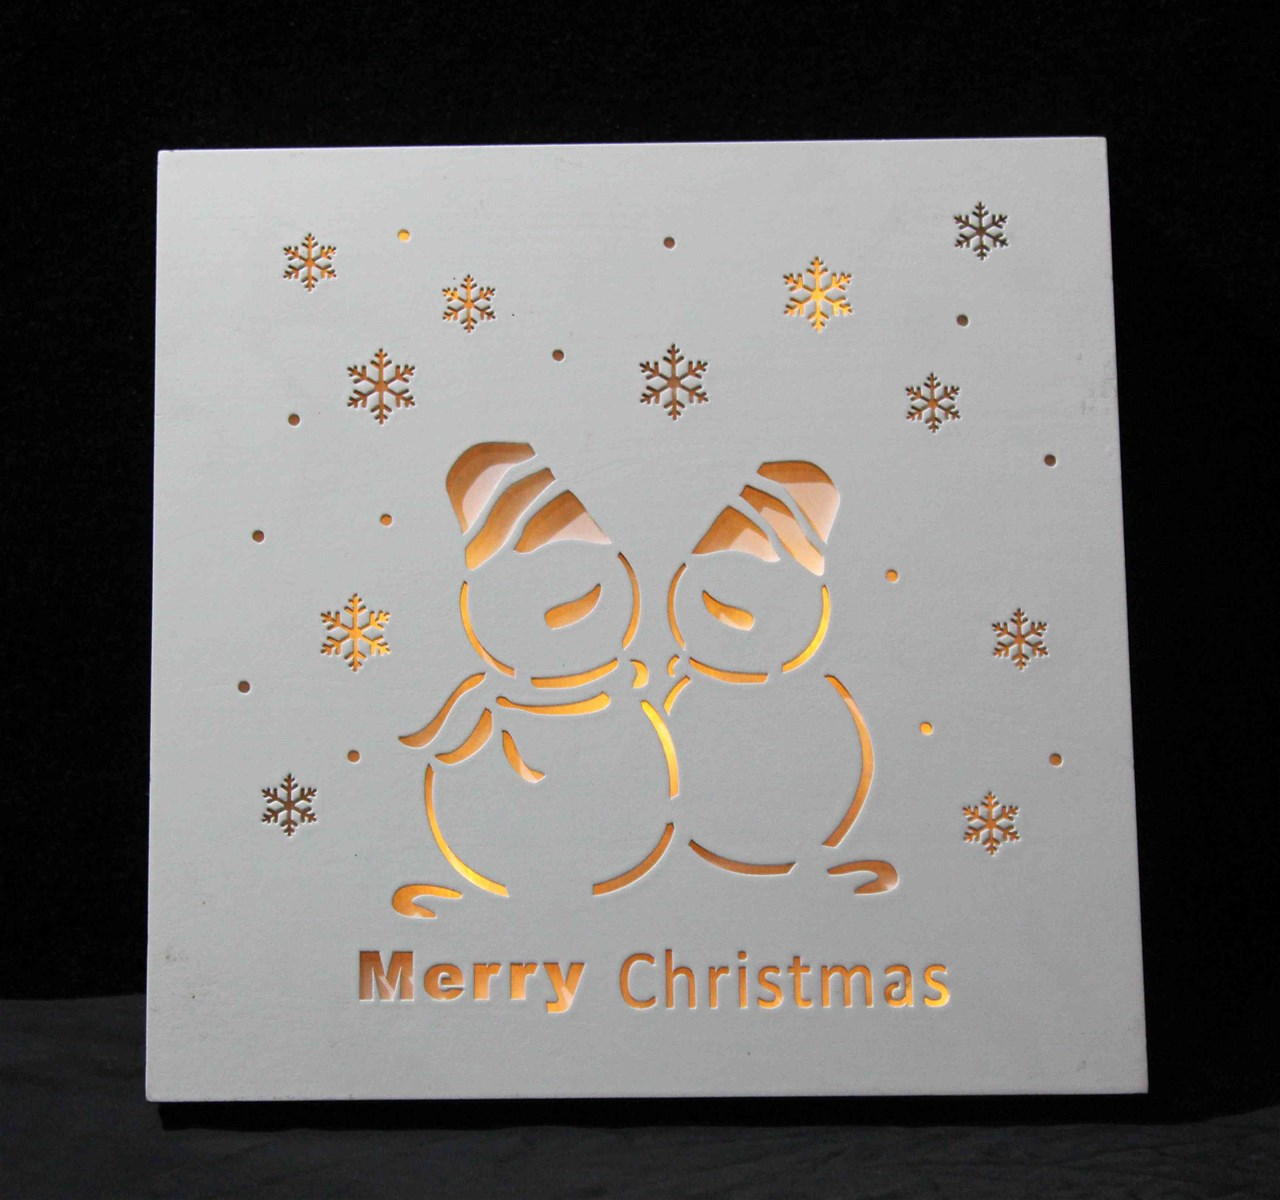 Home decoration products Christmas wooden lighting box gifts